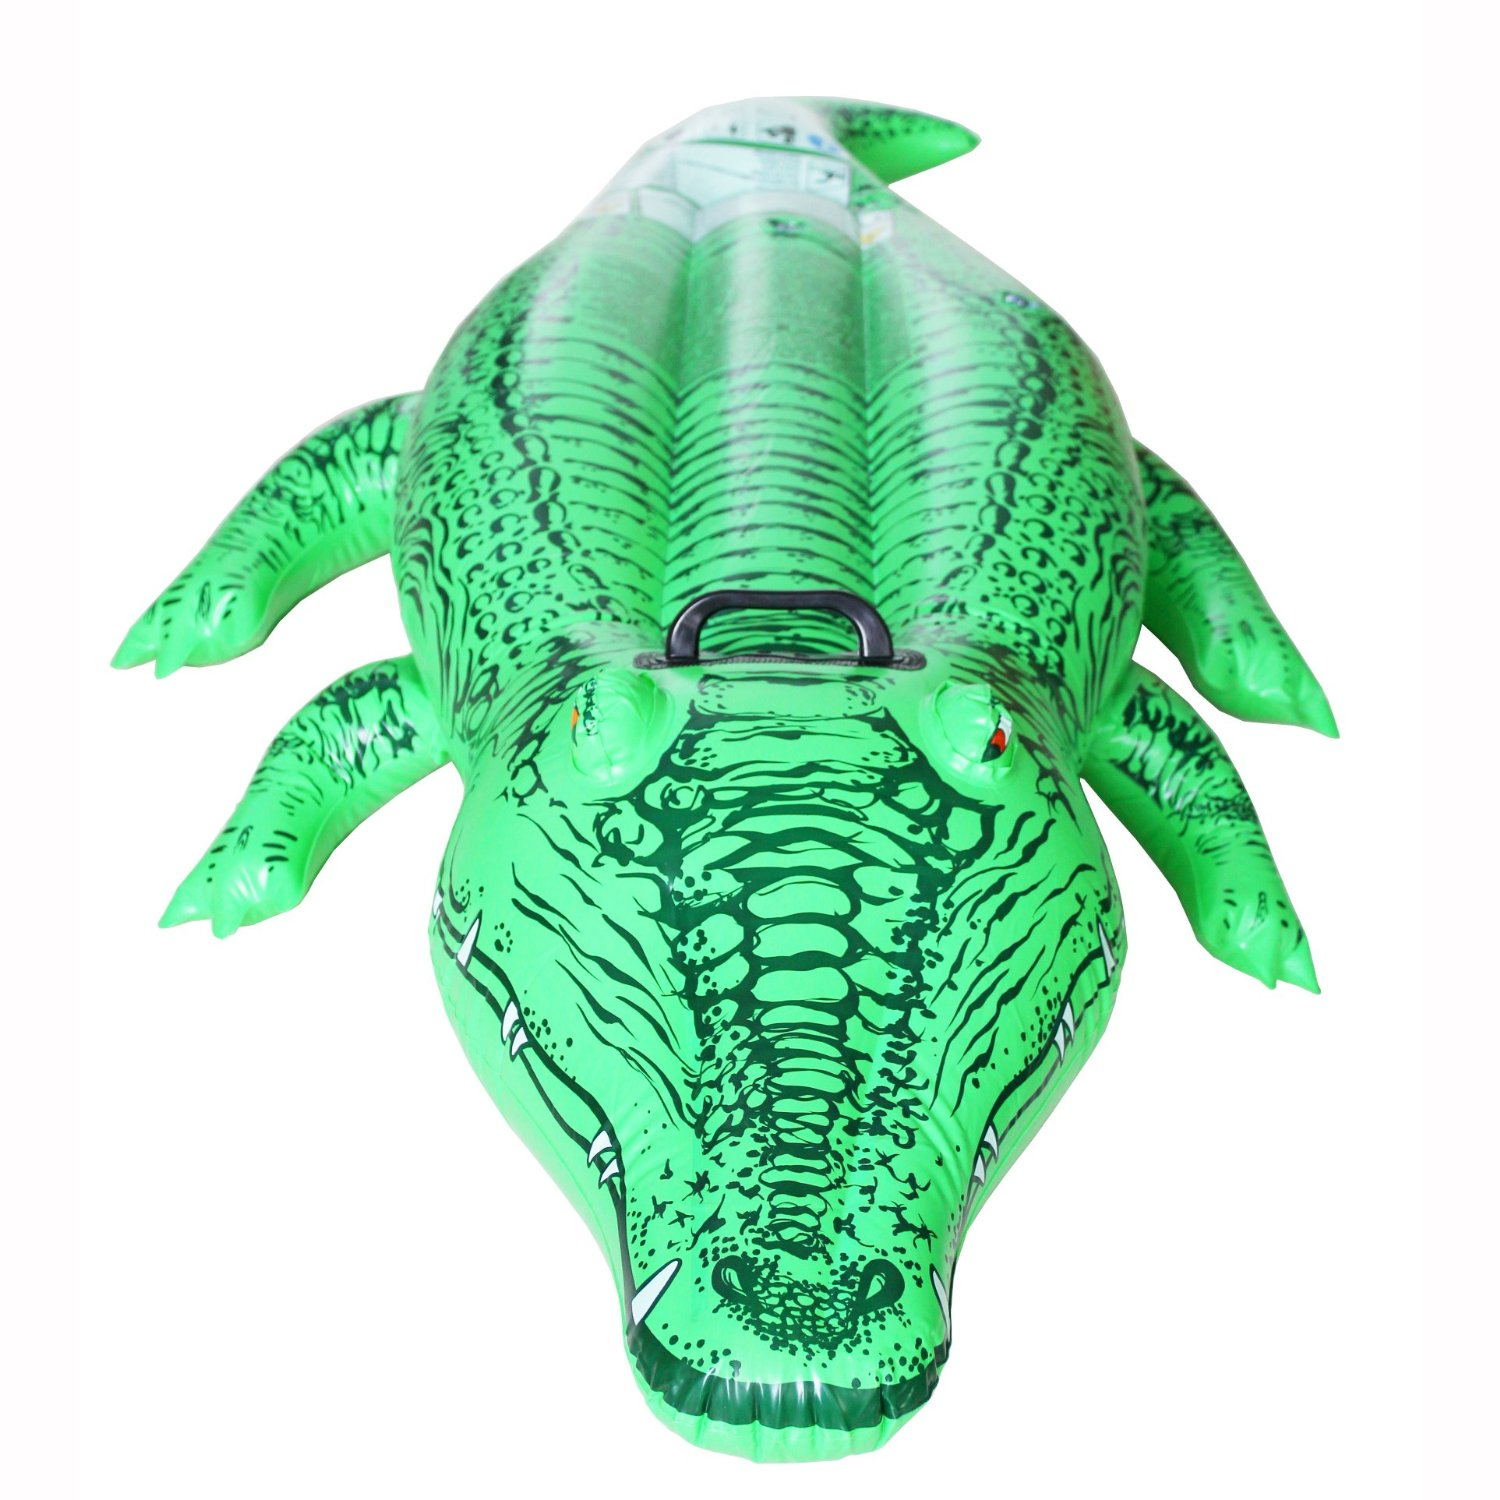 crocodile-chevauchable-168-cm-intex